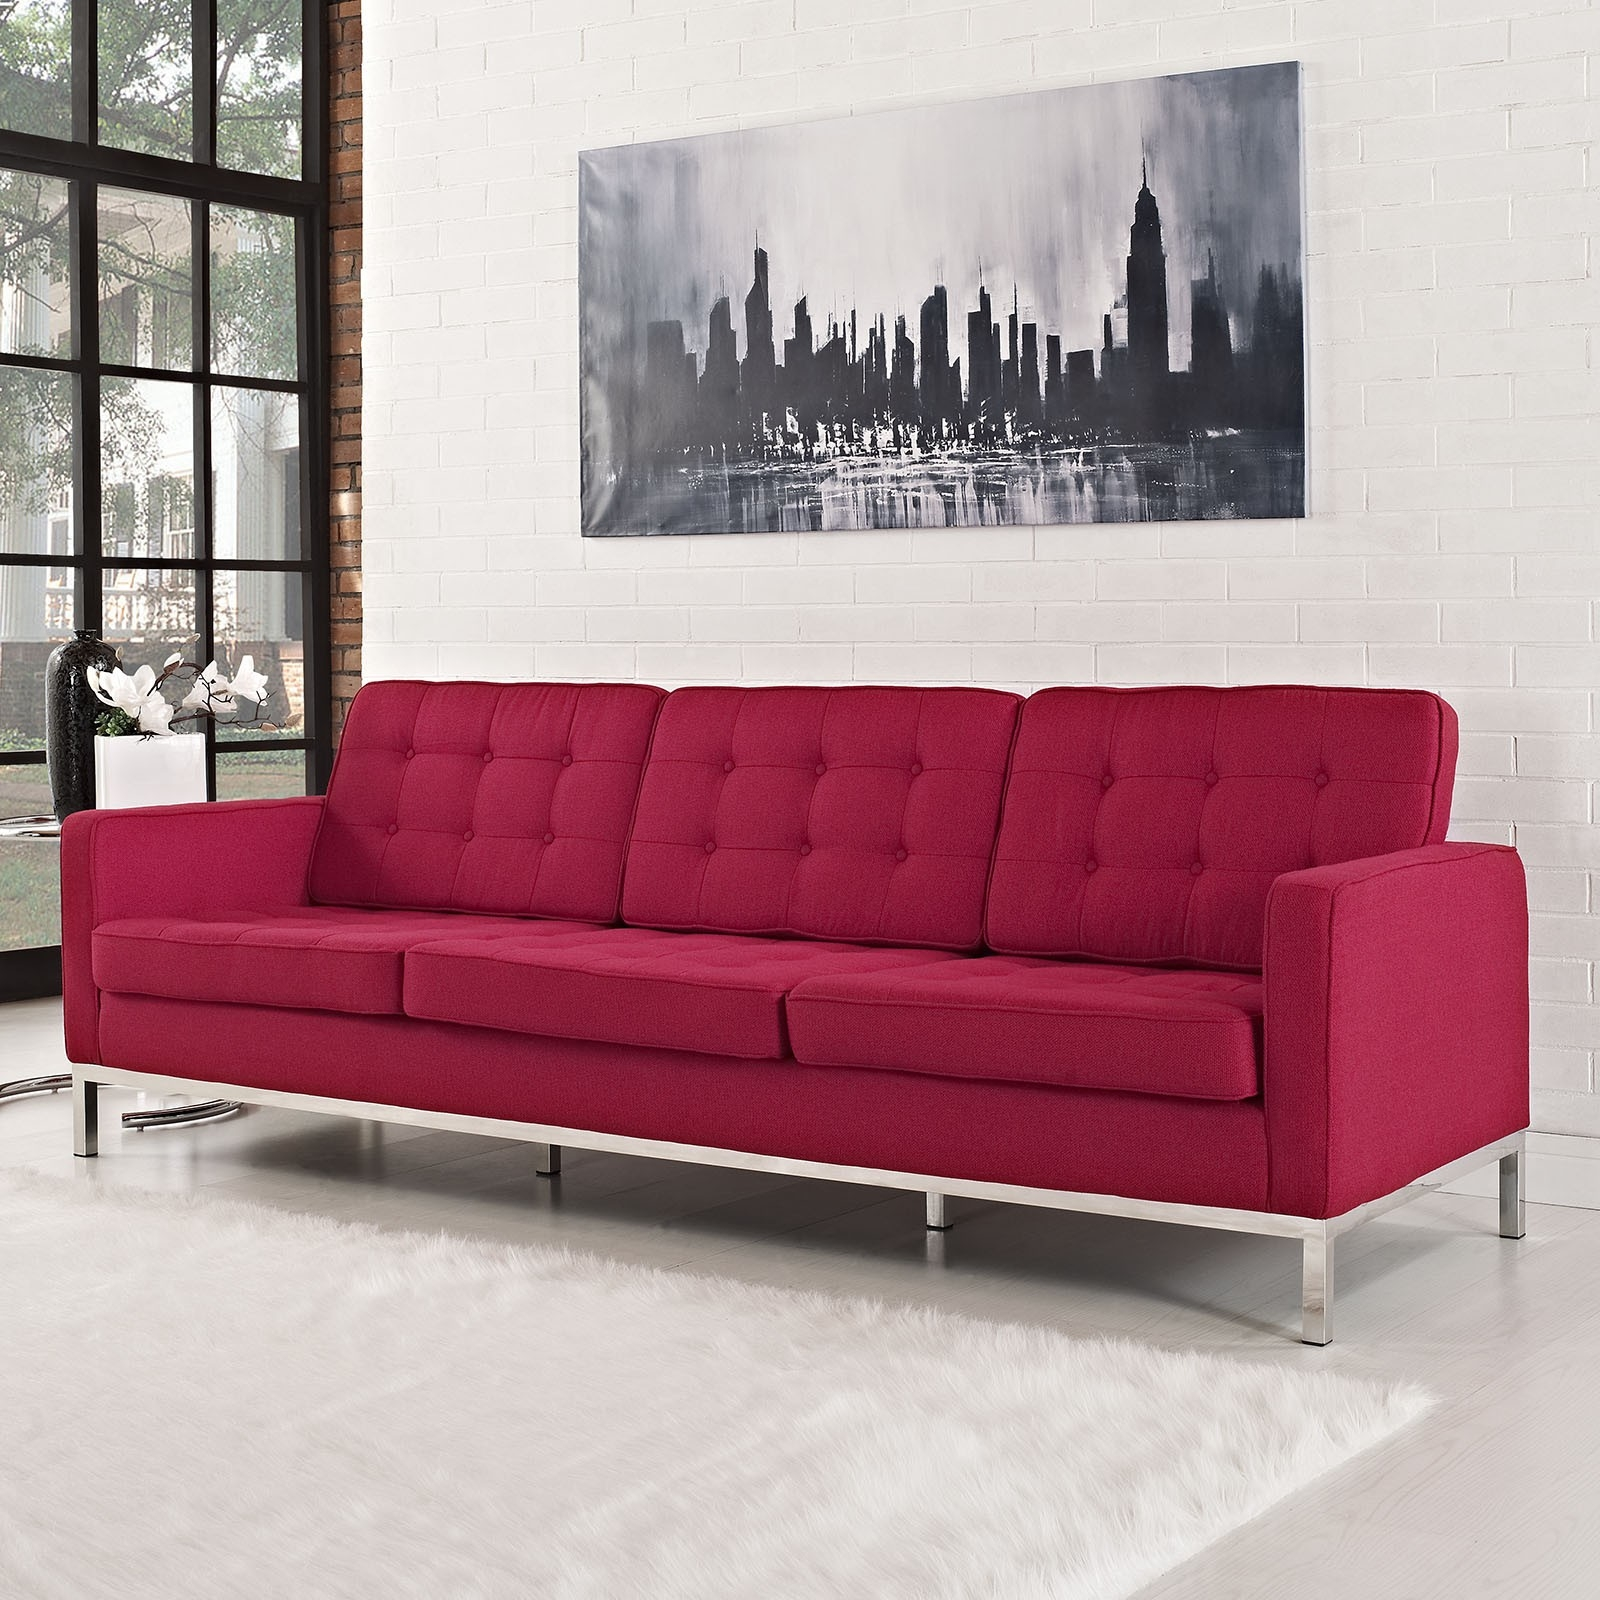 Knoll Florence 2 Seats Sofa In The Shop River Academy With Florence Knoll Style Sofas (Image 11 of 15)